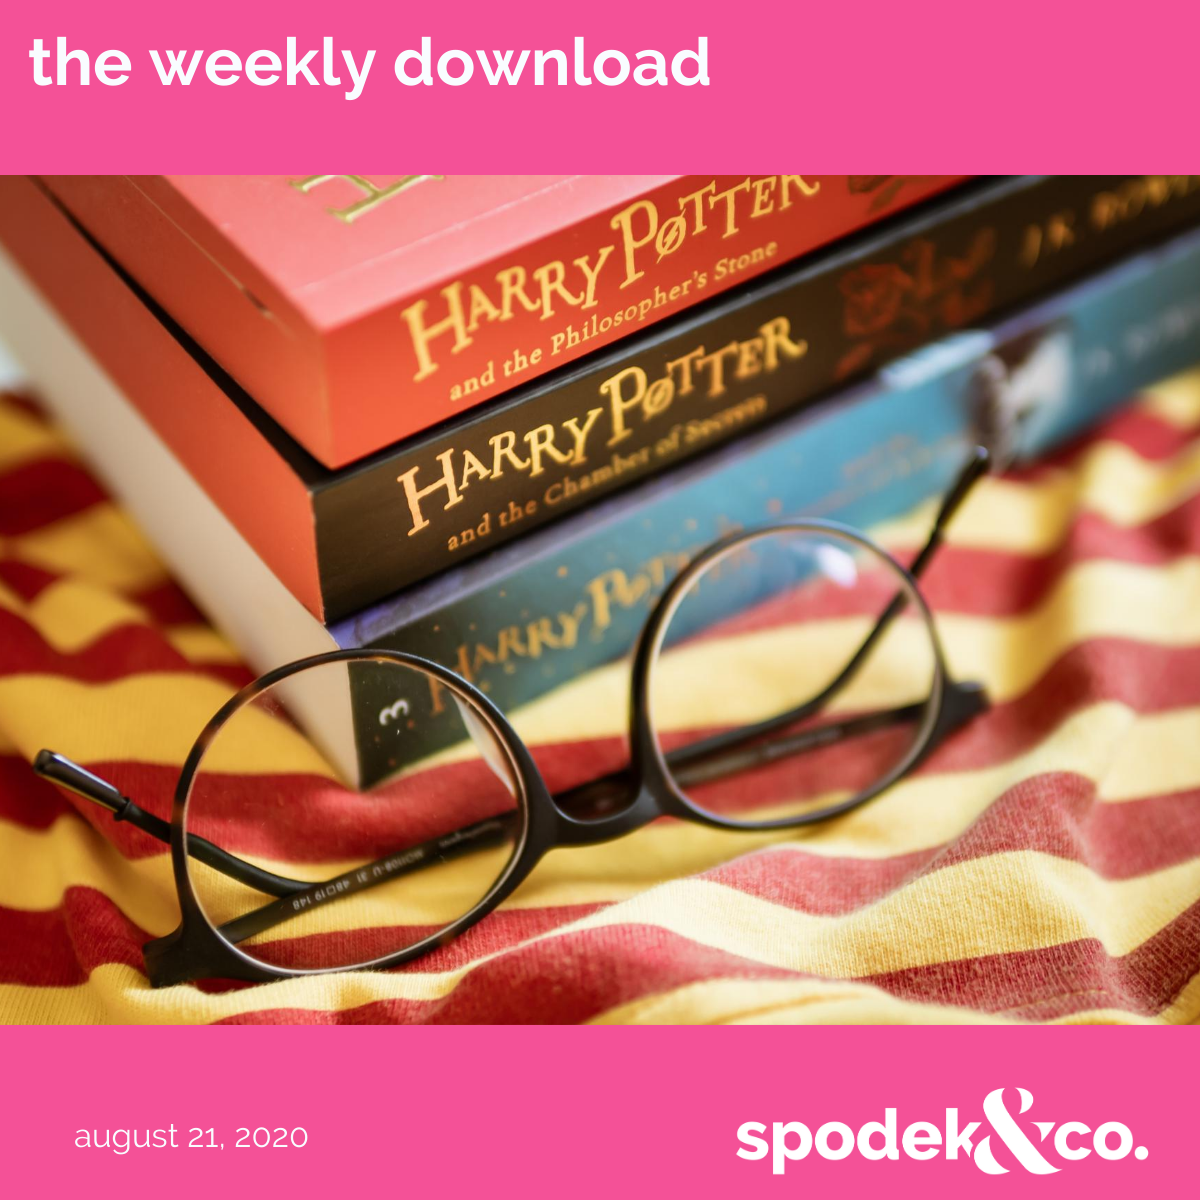 The Weekly Download – August 21, 2020